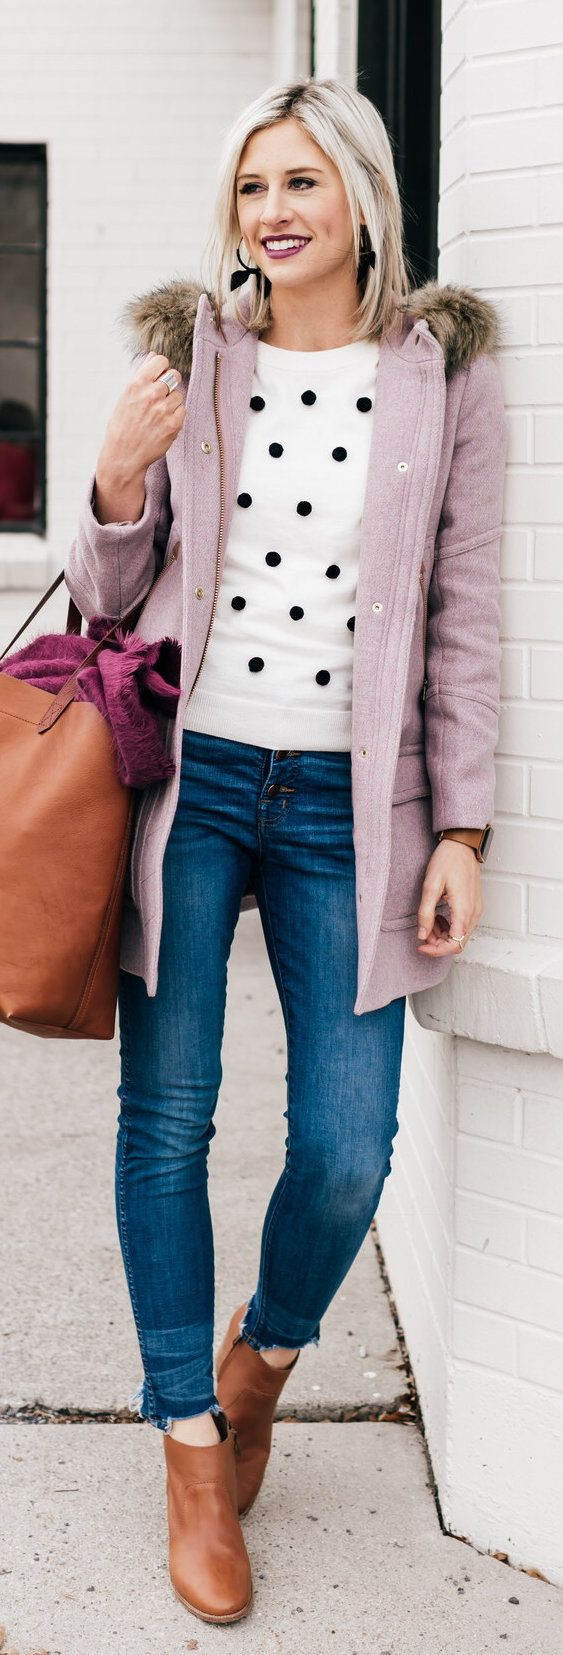 #spring #outfits woman wearing purple parka coat carrying brown tote bag. Pic by @littlemissfearlessblog